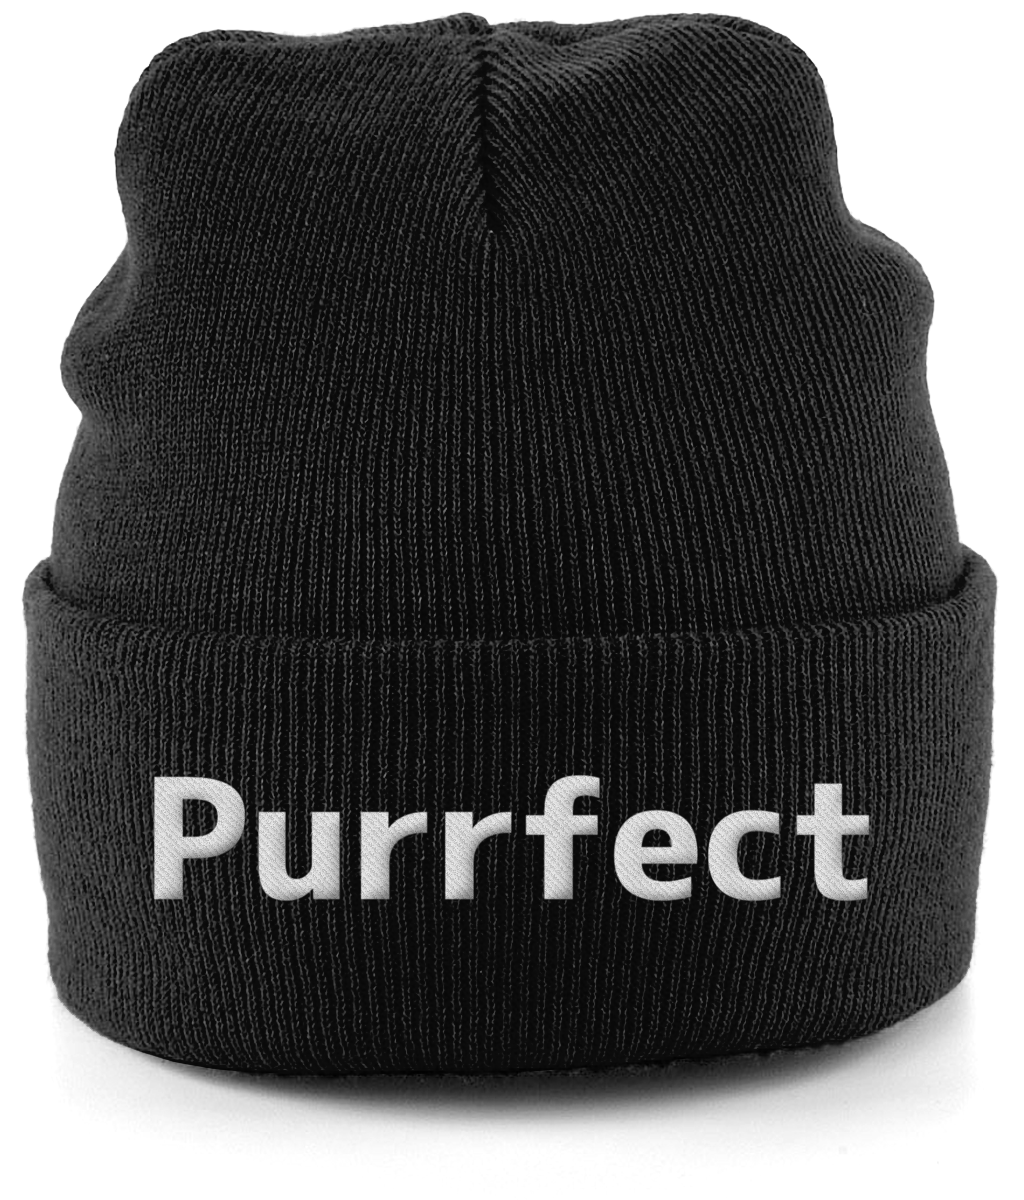 Unisex Embroidered Cuffed Beanie Purrfect Cat